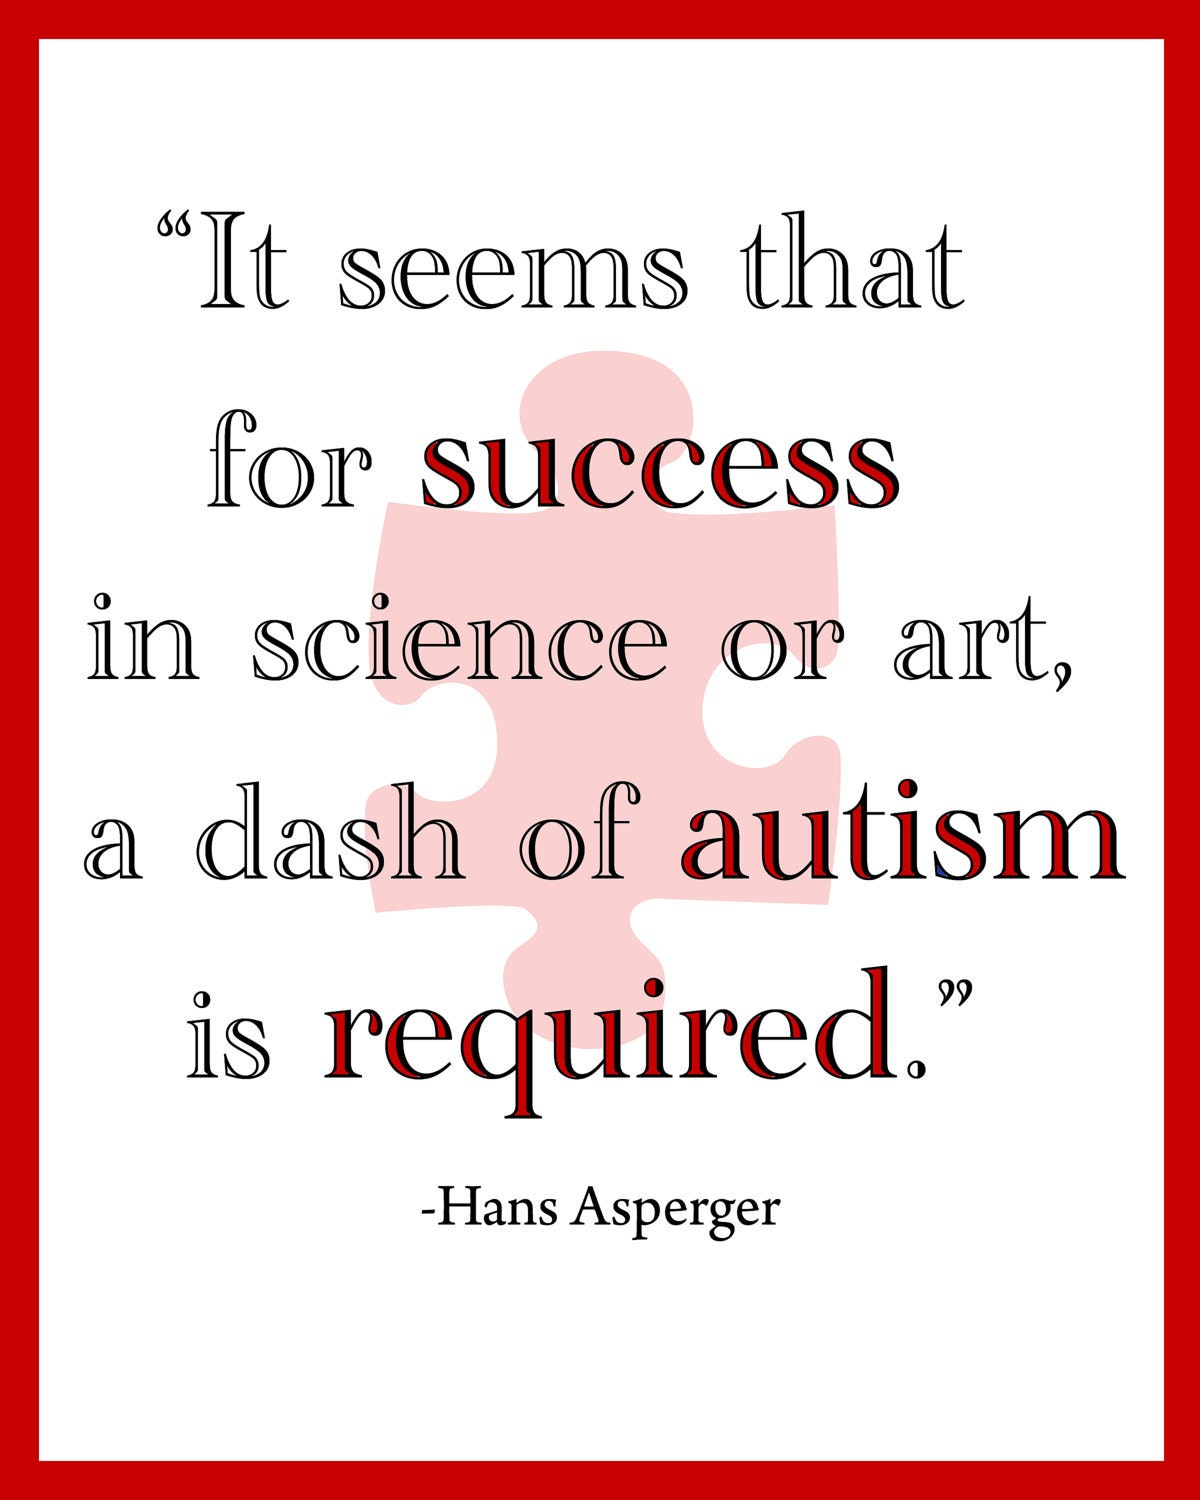 Inspirational Quotes About Positive: Inspirational Quotes About Autism. QuotesGram